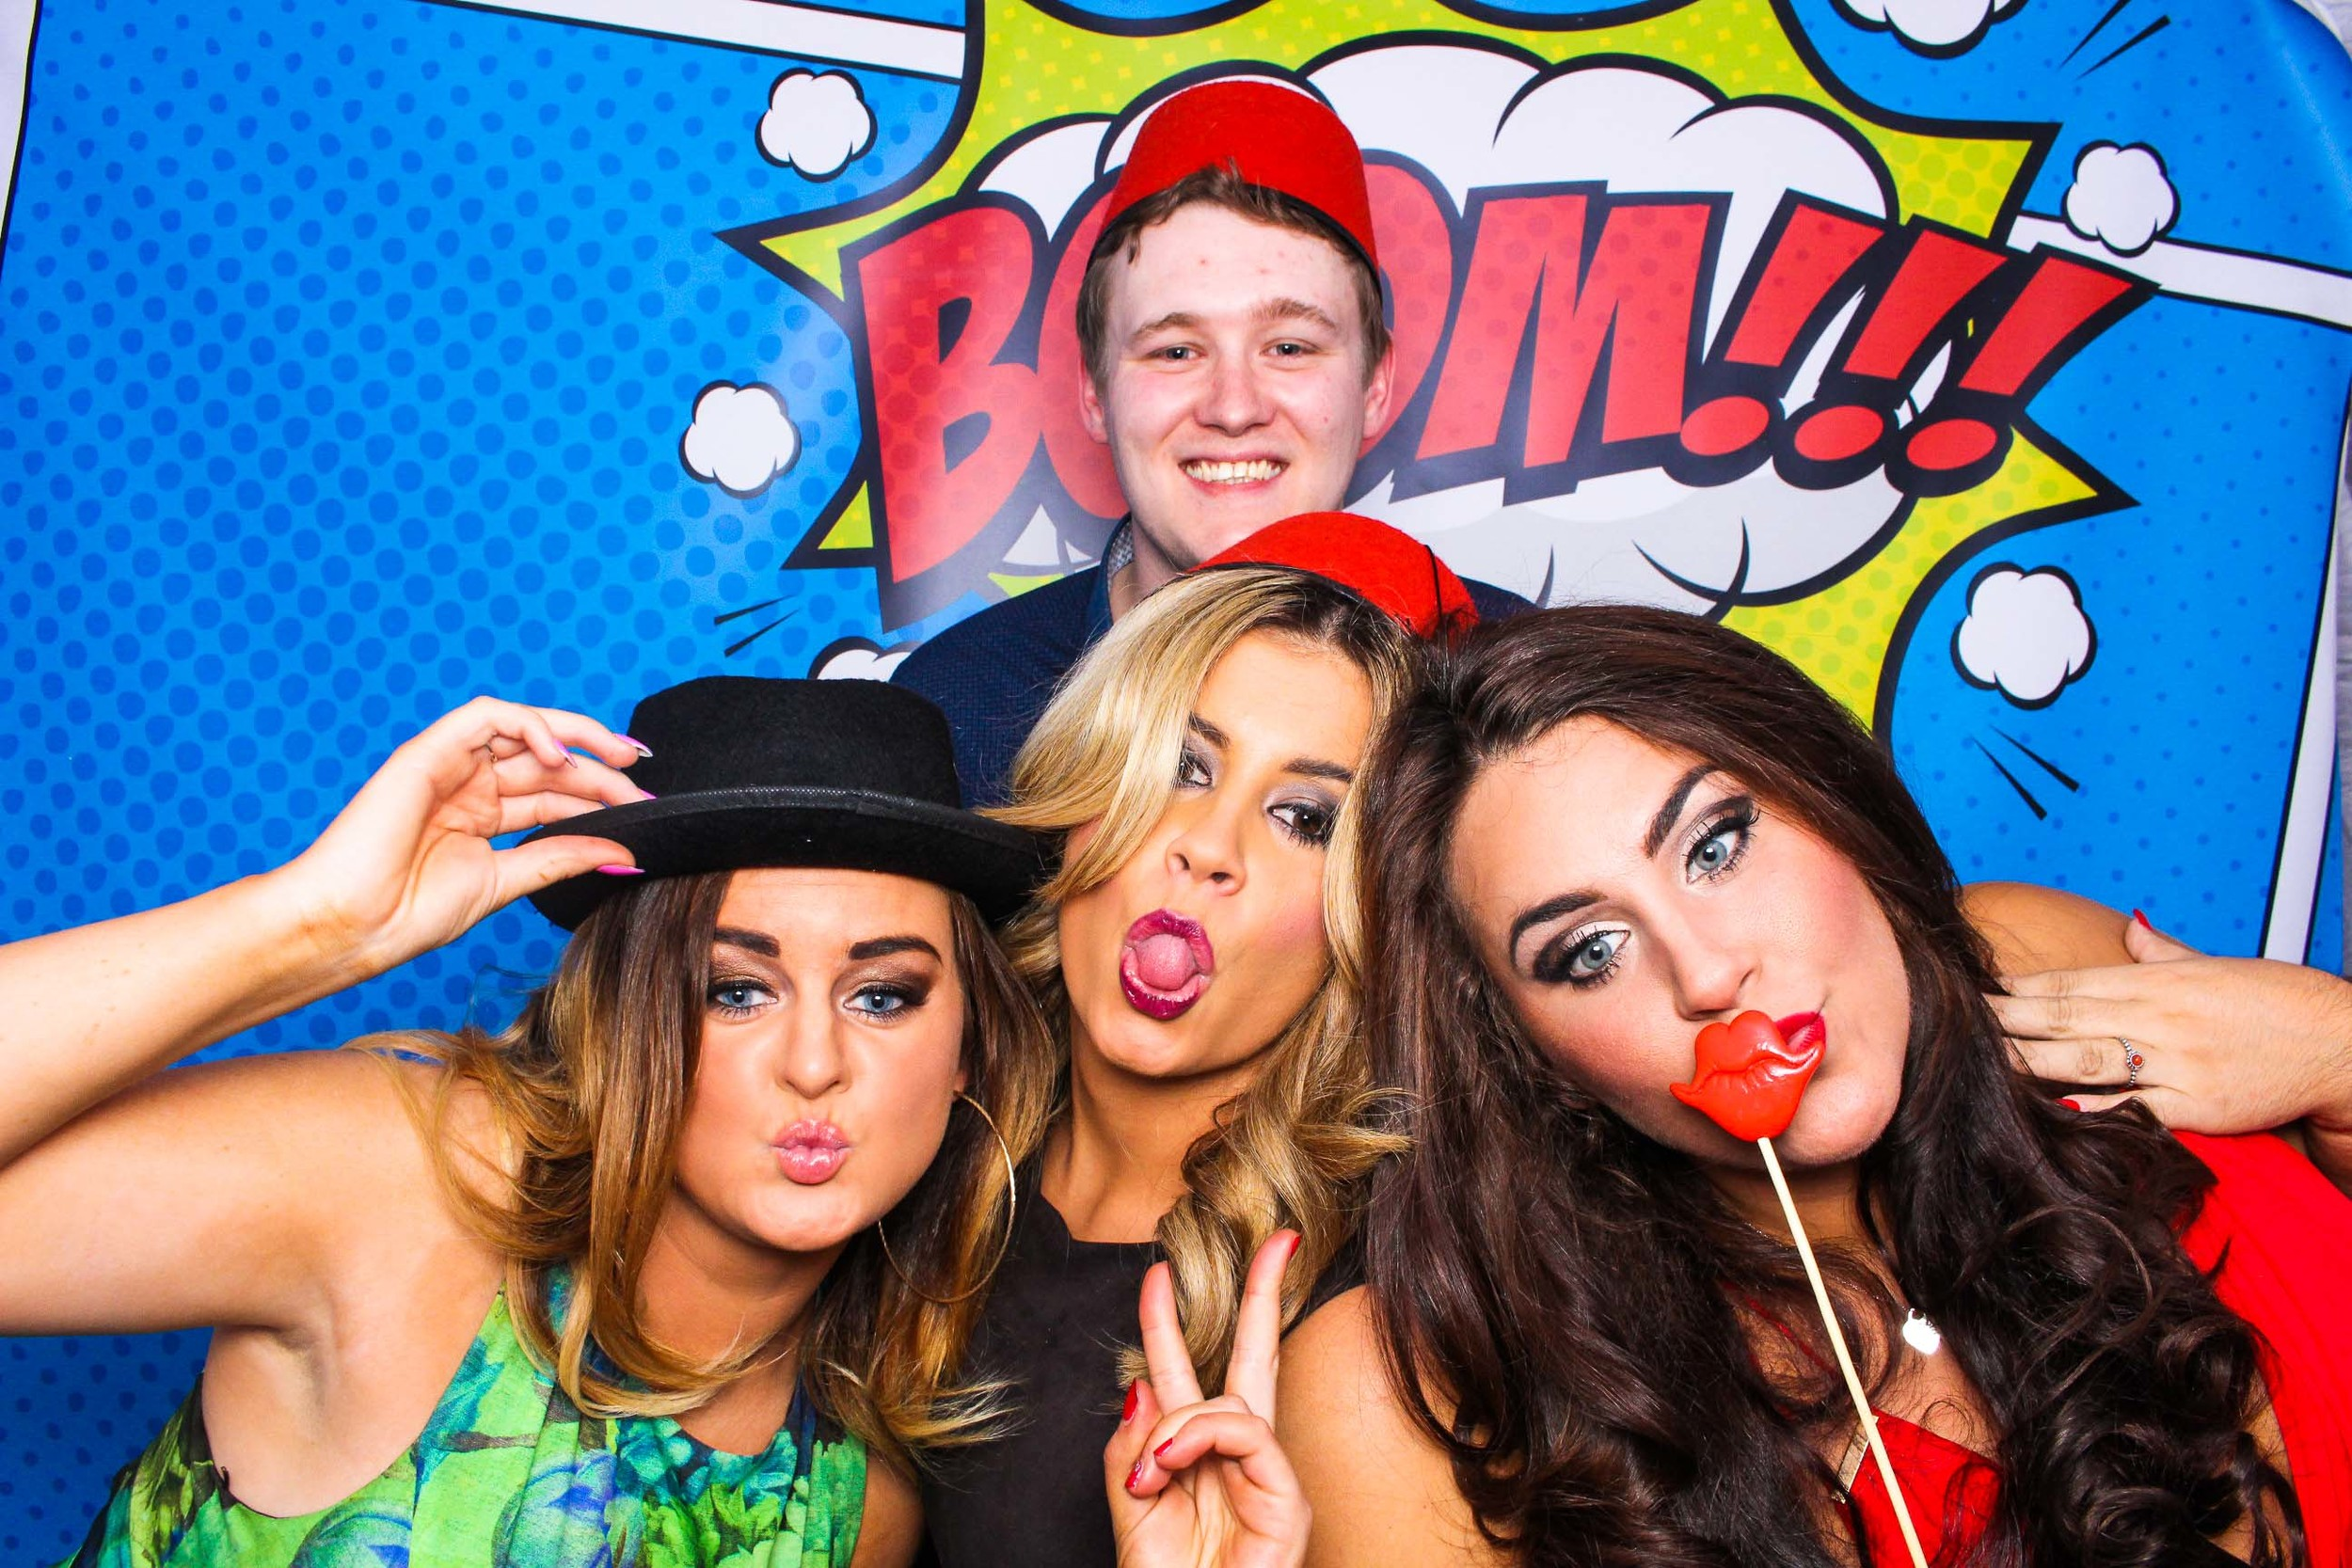 Fotoauto Photo Booth Hire - Shop Direct-35.jpg